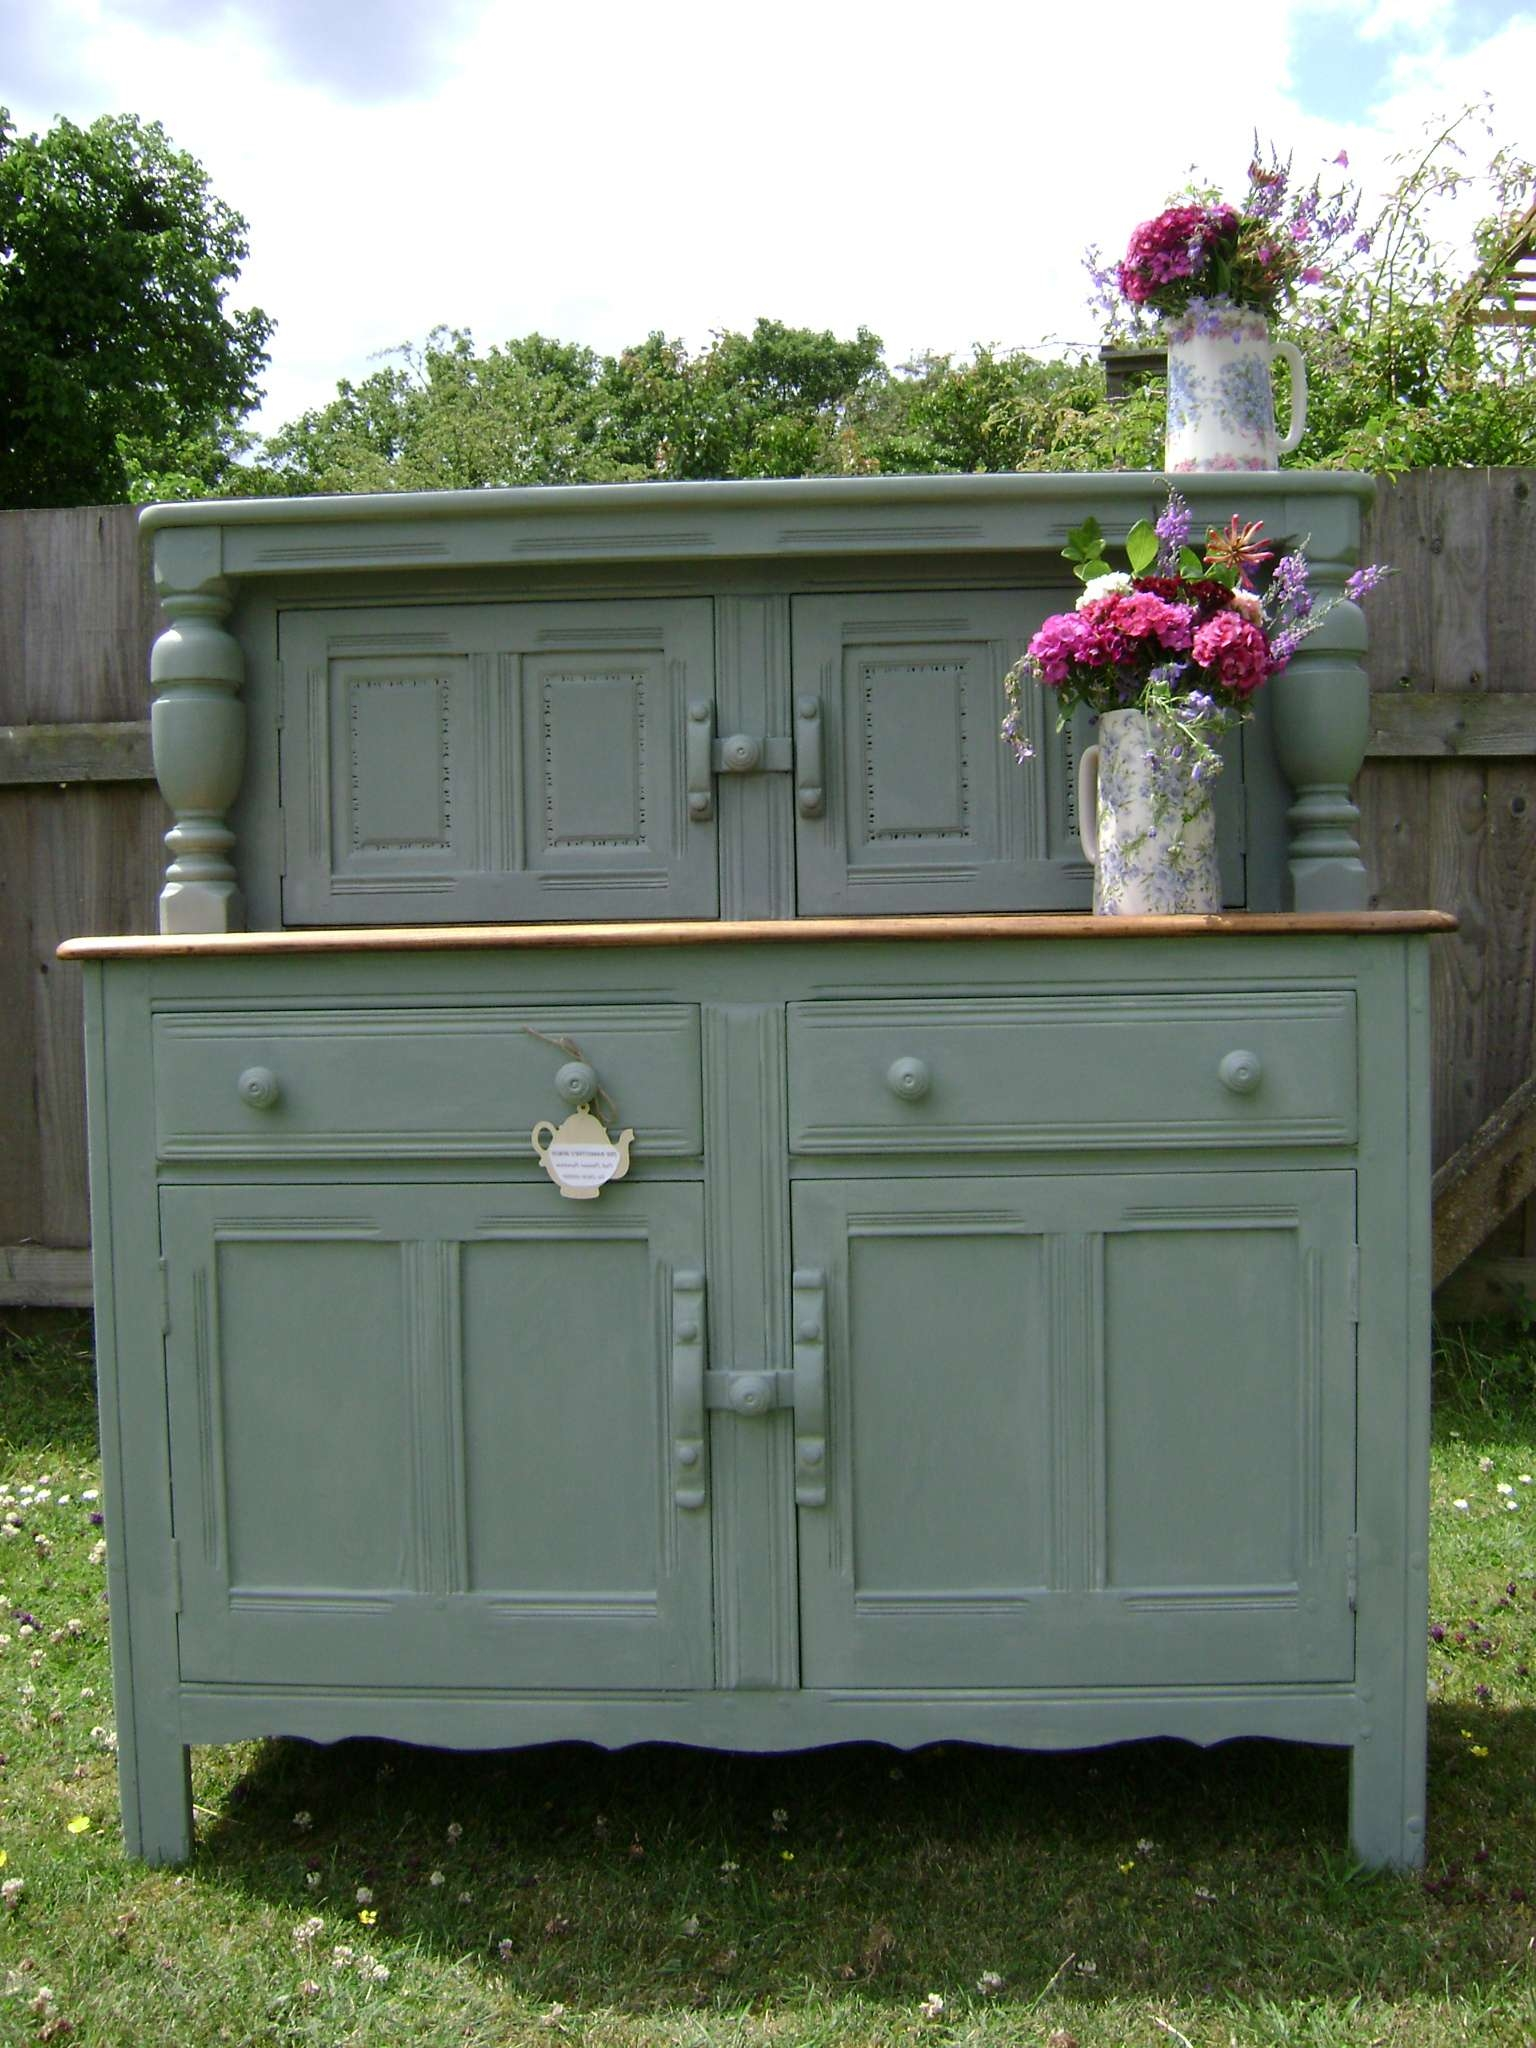 June | 2011 | The Barrister's Horse Intended For Annie Sloan Painted Sideboards (View 20 of 20)